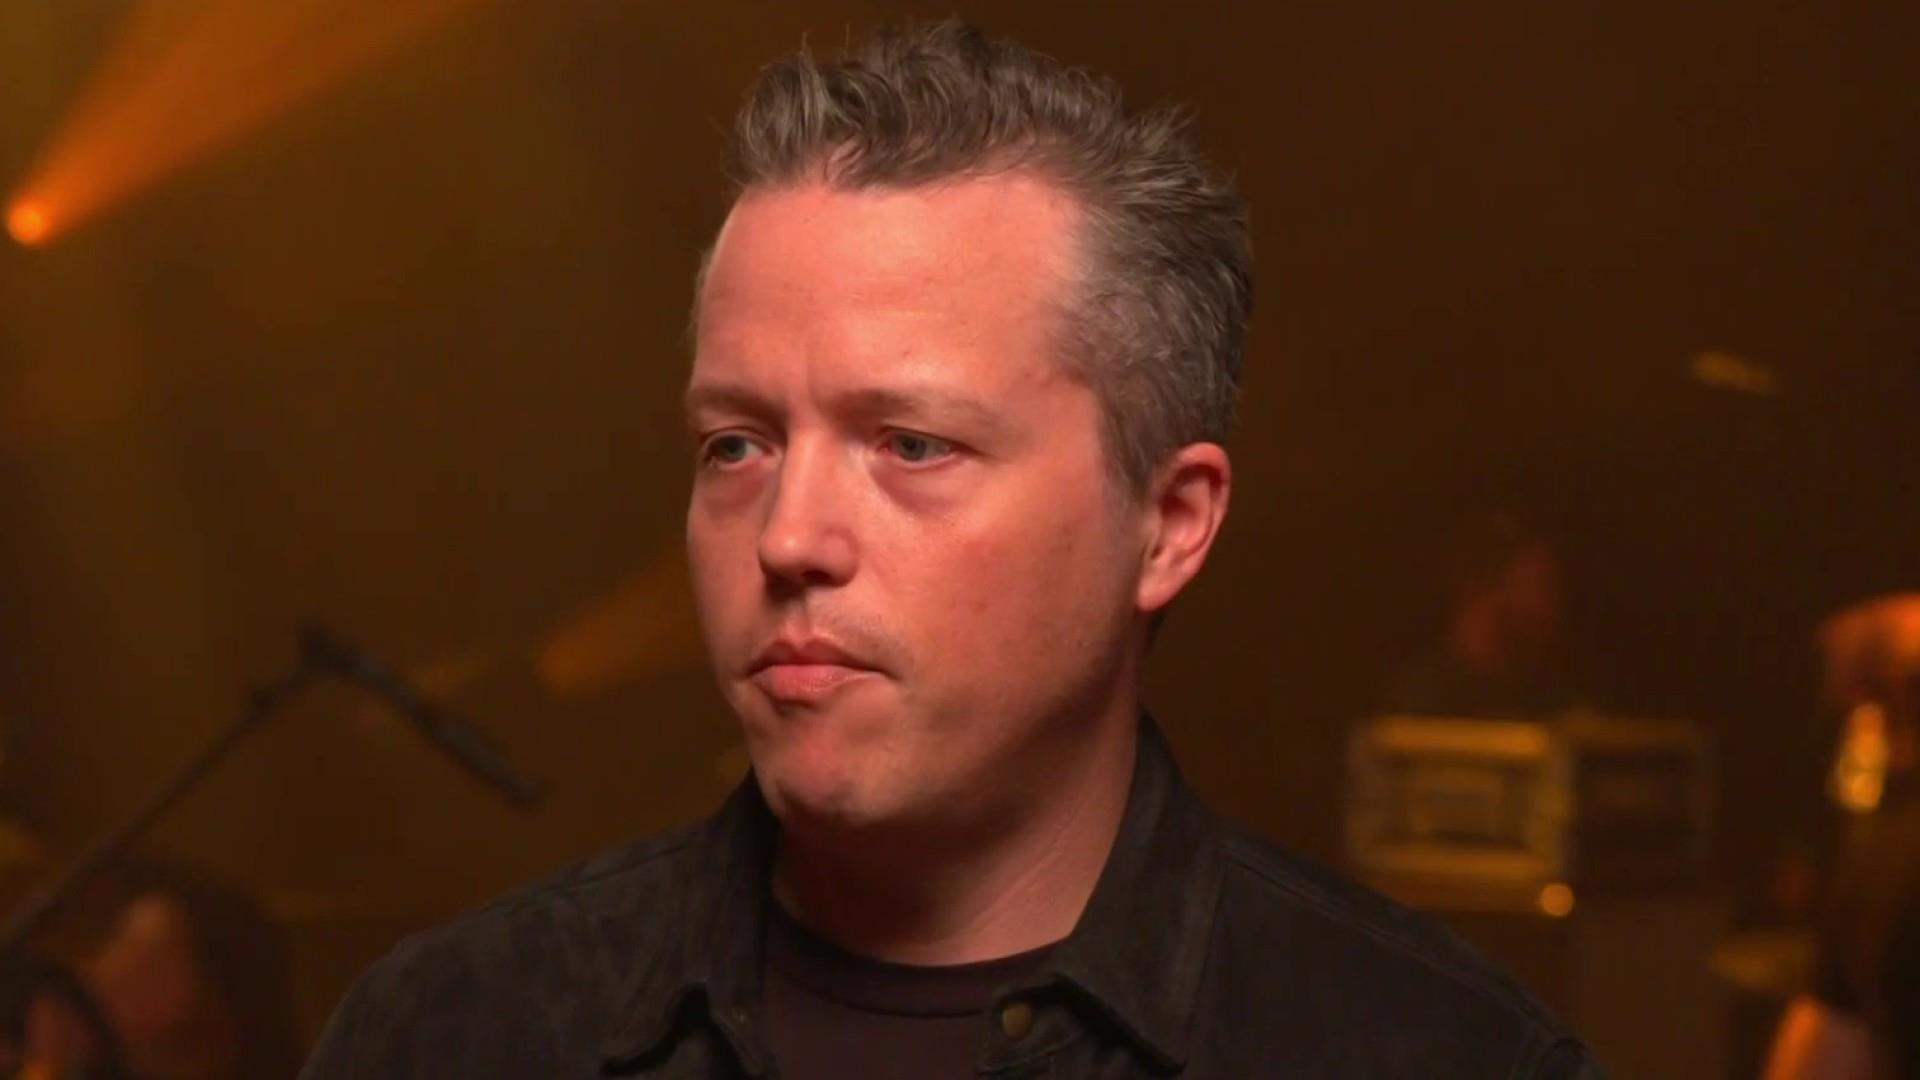 Singer Jason Isbell explains backing Dems in 2018